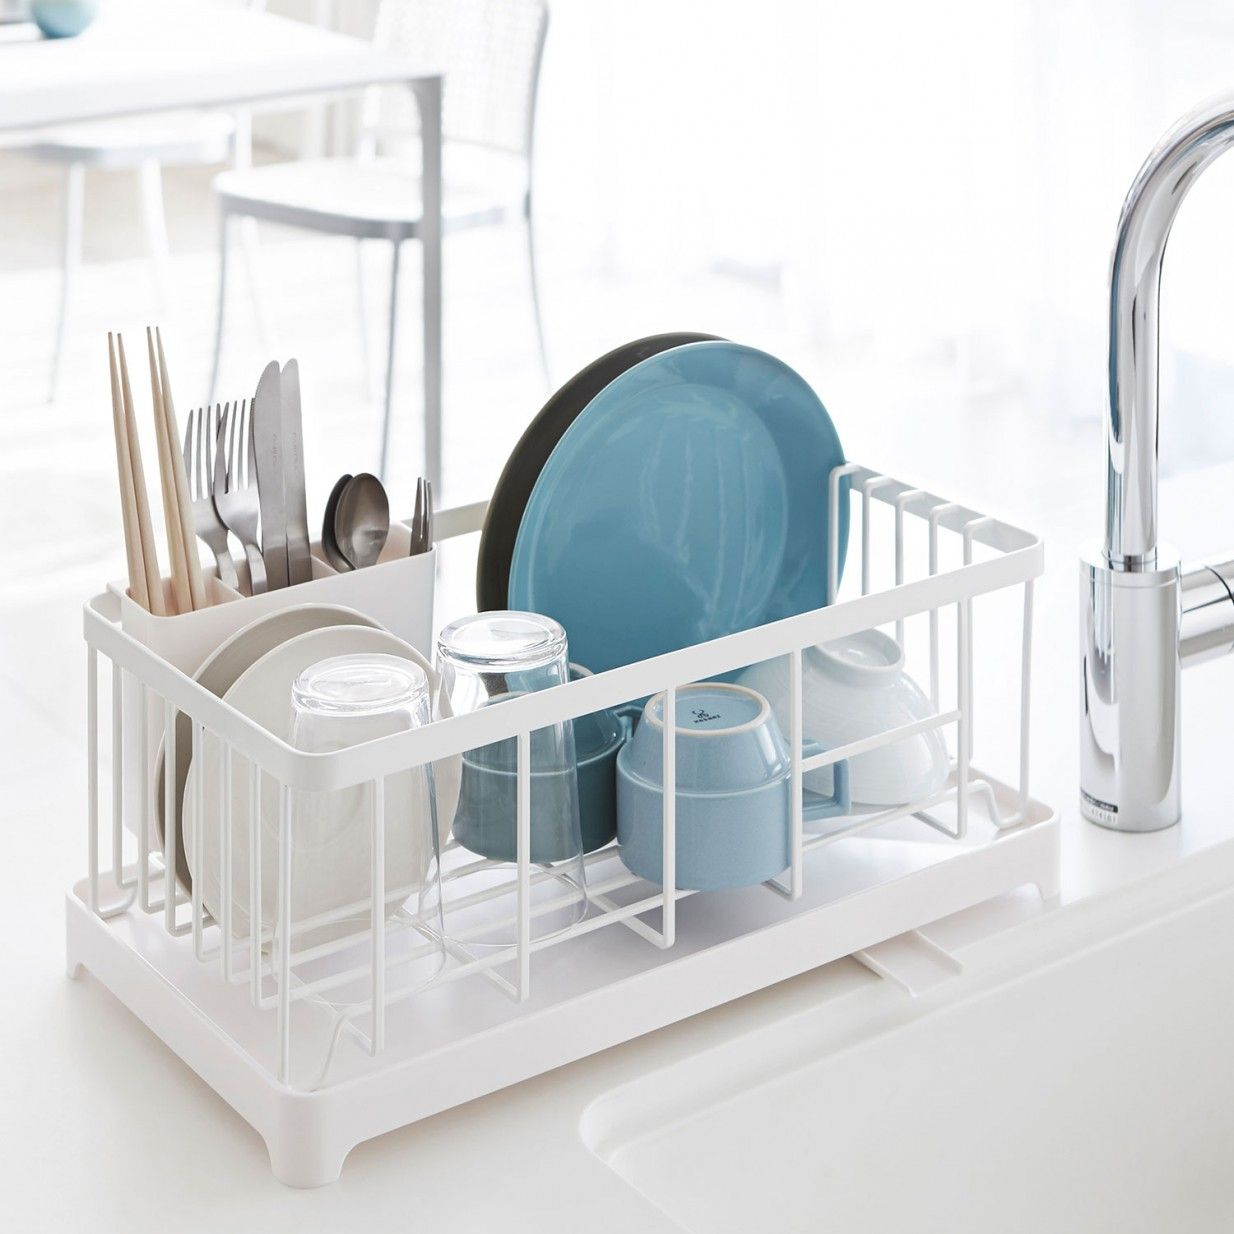 Tower Dish Rack - White | Yamazaki | wollen | Pinterest | Dish racks ...